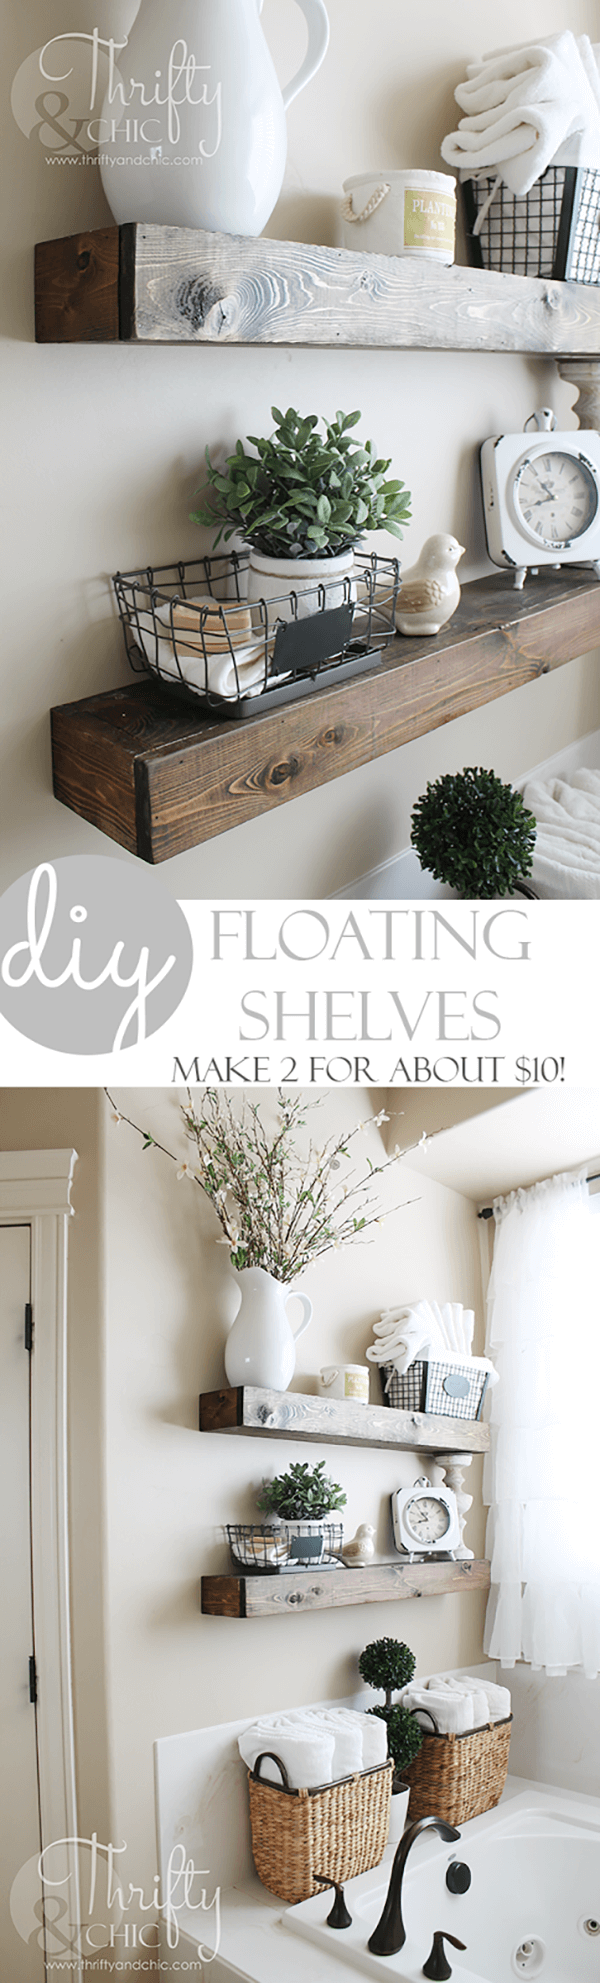 best diy bathroom shelf ideas and designs for homebnc floating shelves petite chateau inspiration wire storage racks toy bins canadian tire wooden bedroom barnwood with hooks ikea